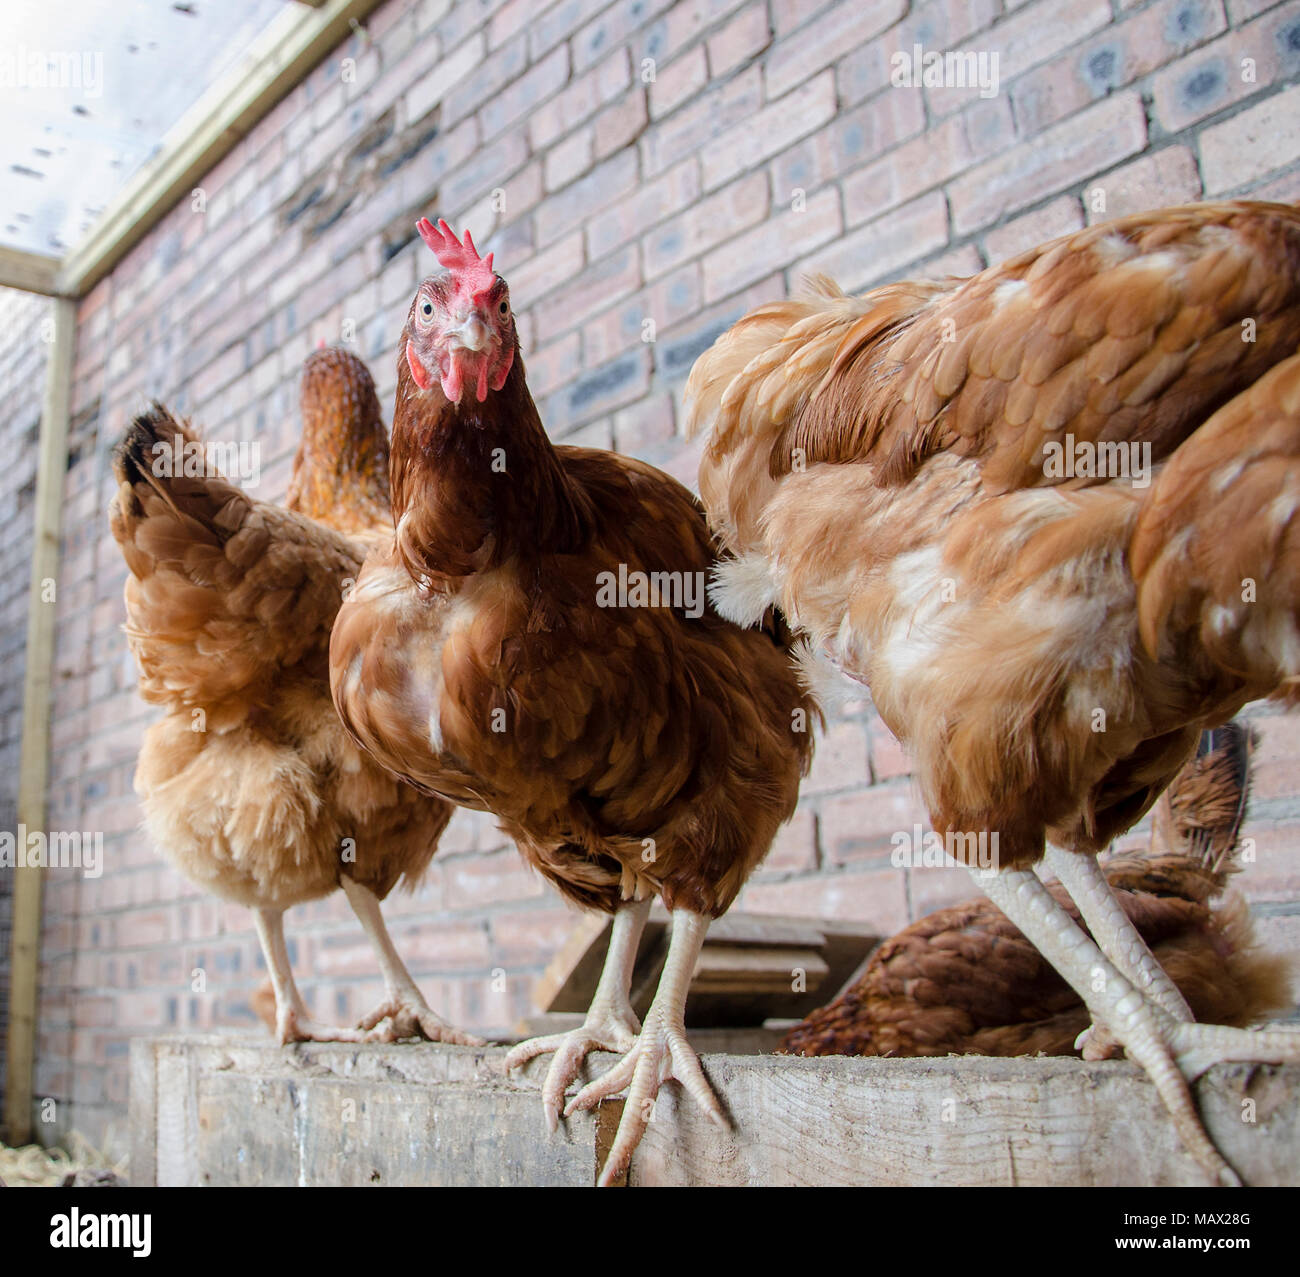 GLASGOW, SCOTLAND - AUGUST 16 2013: A group of ISA Brown hens in a sand pit but only one looks towards the camera. - Stock Image